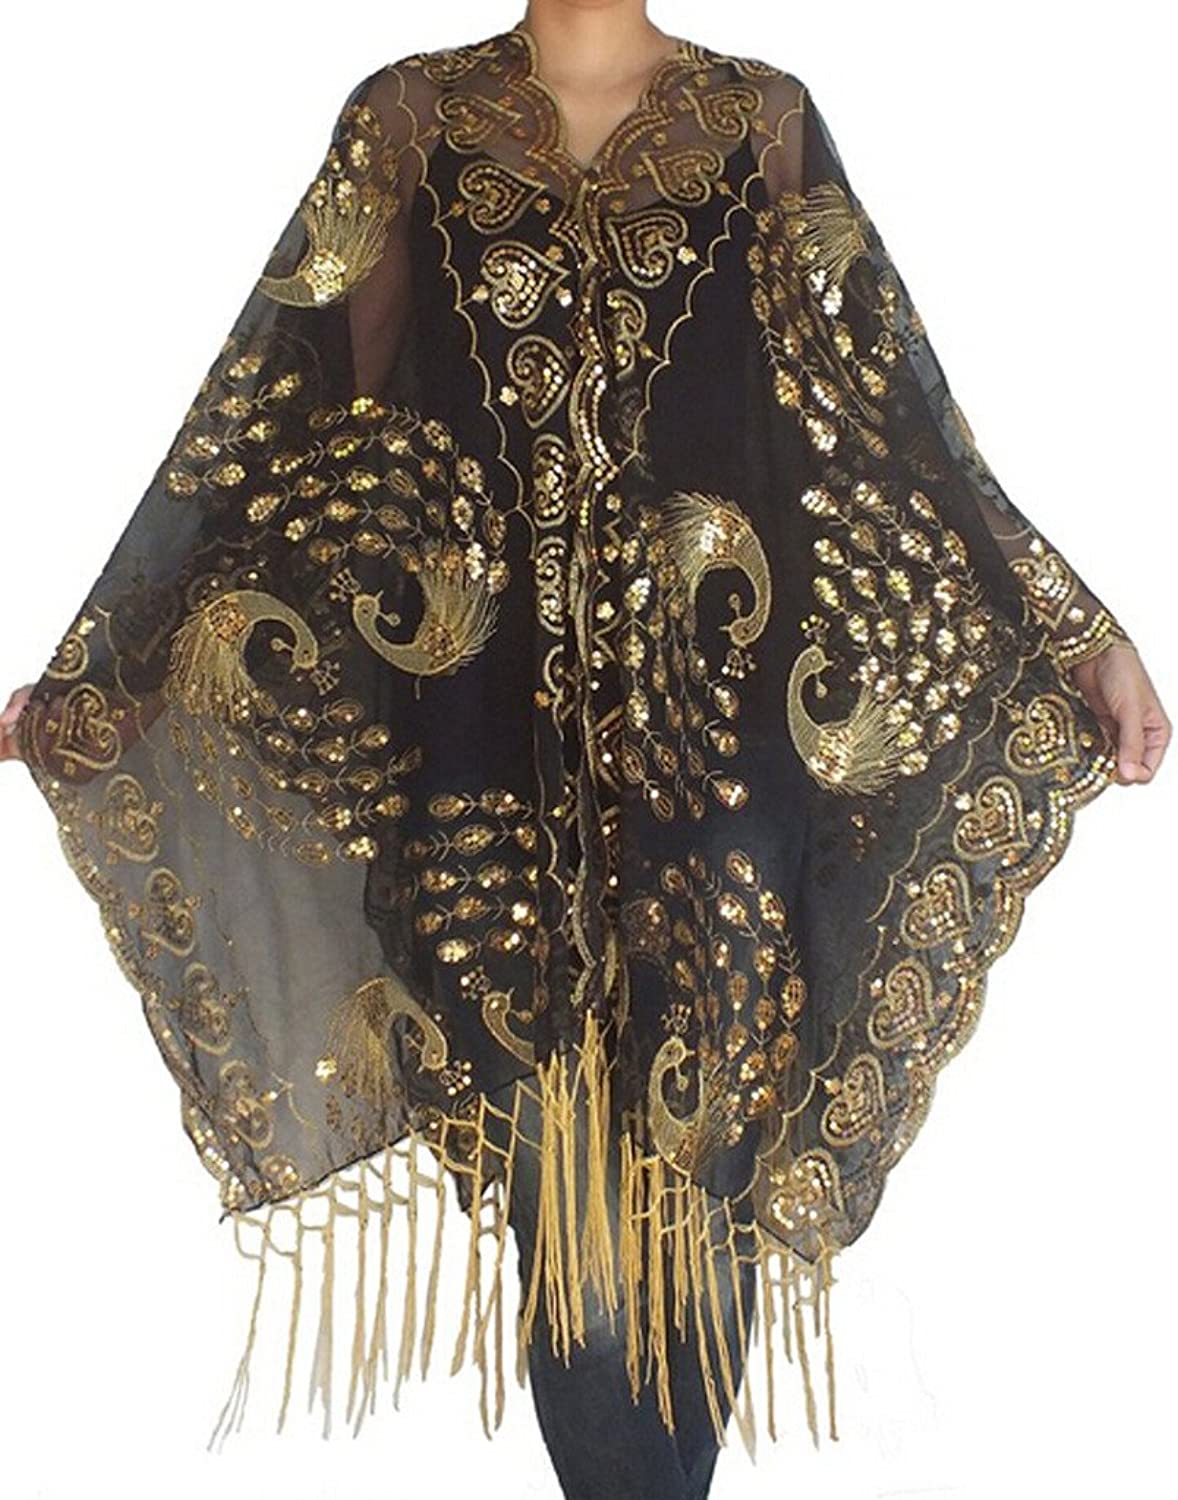 1920s Accessories | Great Gatsby Accessories Guide  Peacock Phoenix Embroidery Sequins Wedding Scarf Shawls $19.99 AT vintagedancer.com